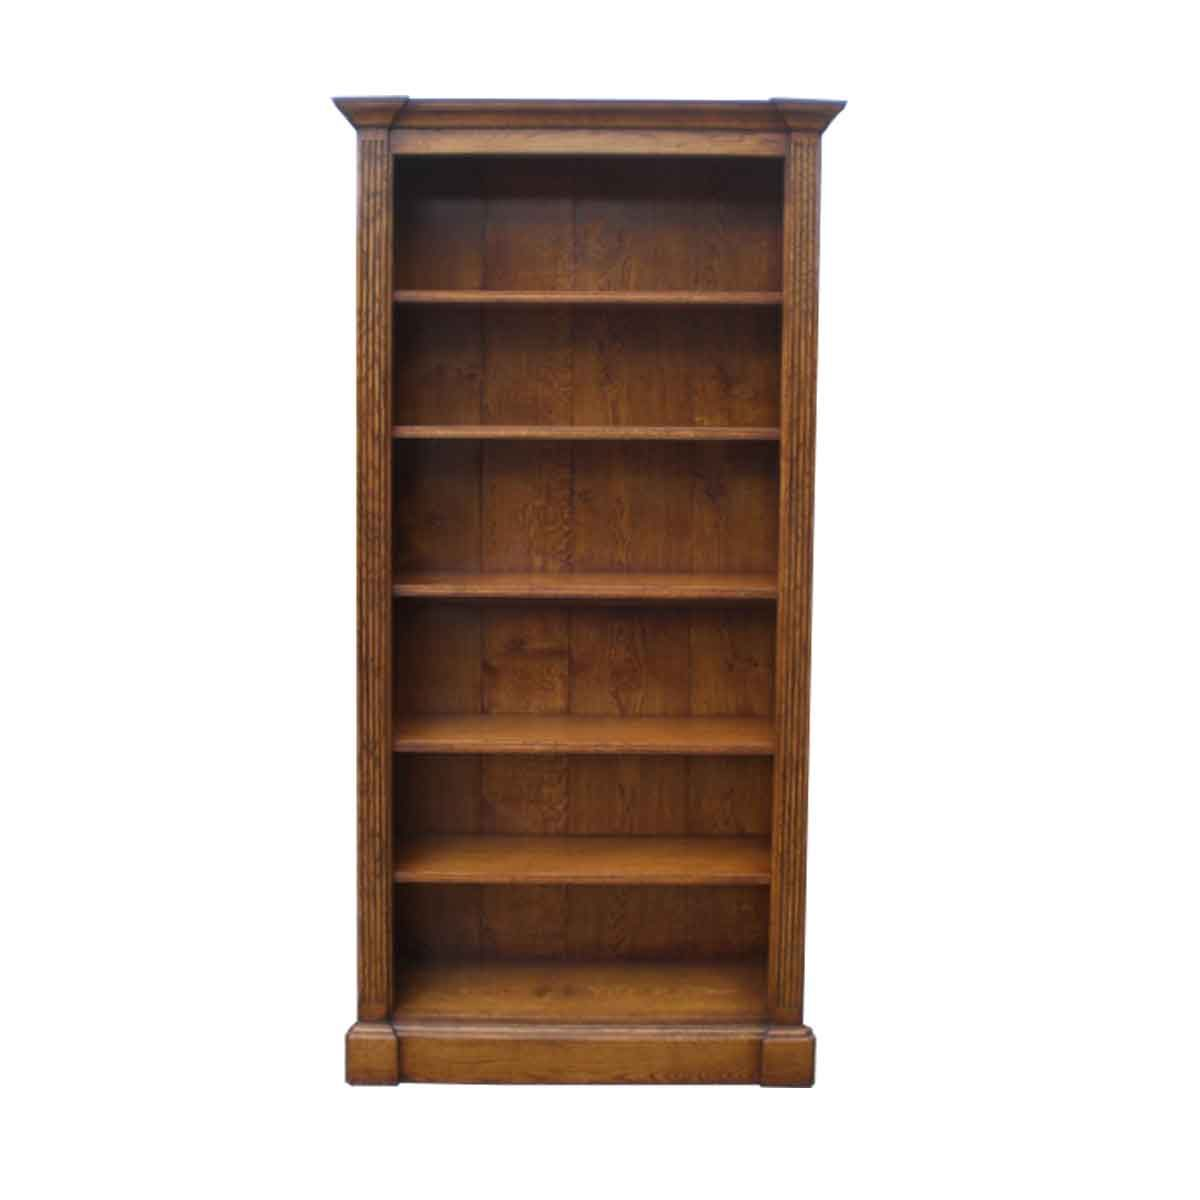 Bespoke Avon Broken Moulding Bookcase Handcrafted in Suffolk